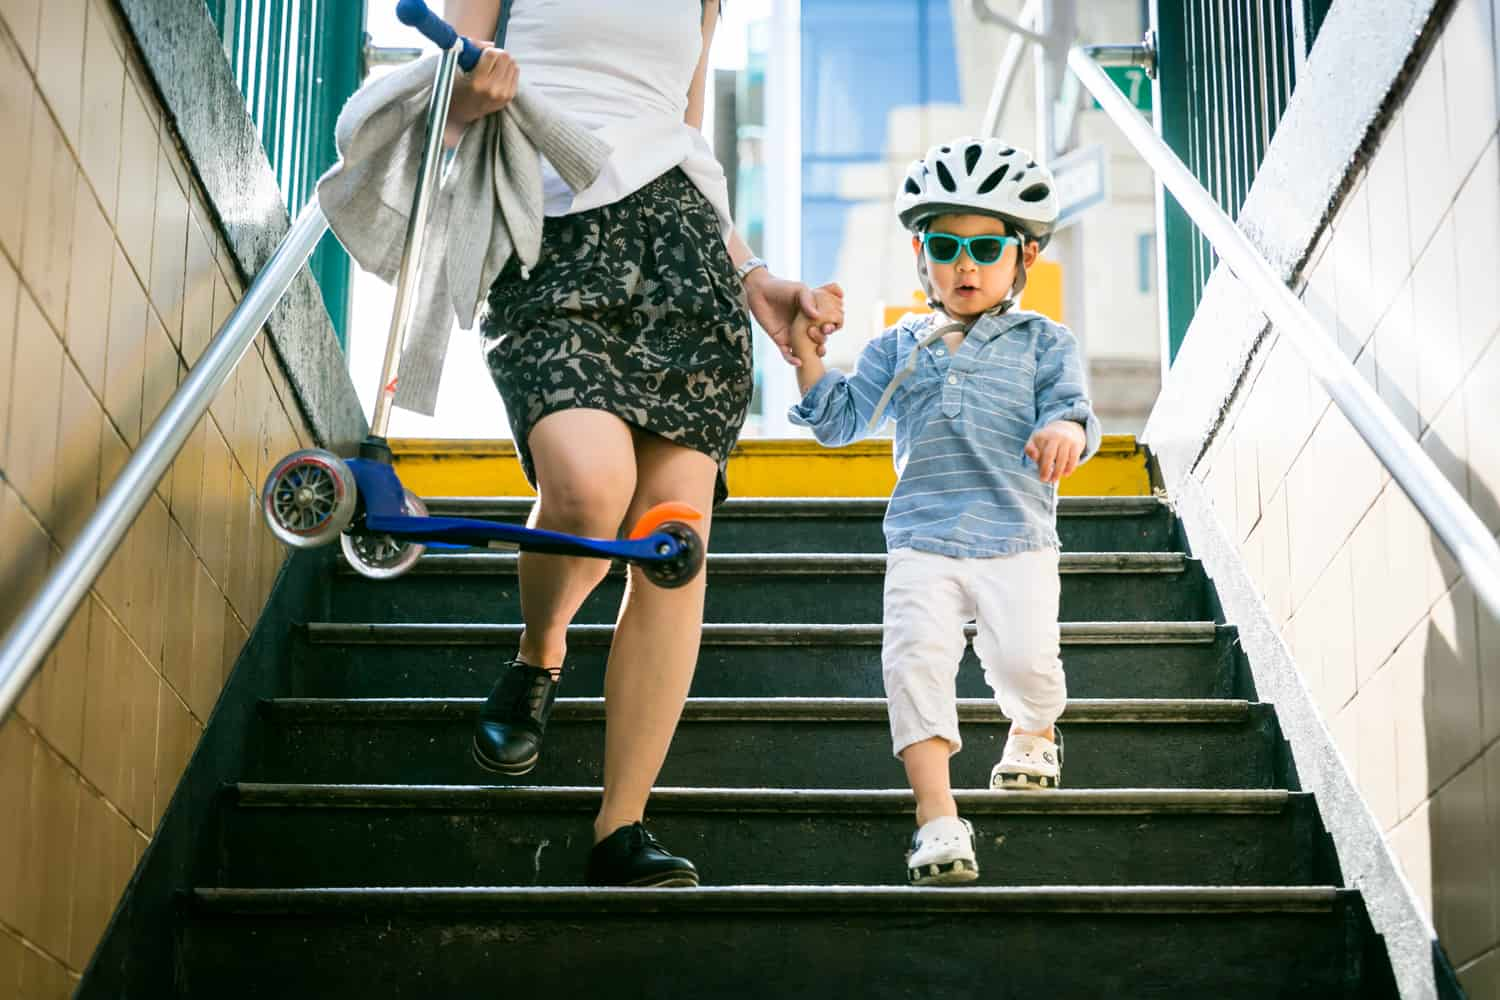 Little boy wearing sunglasses and helmet walking down stairs during a day in the life photography session